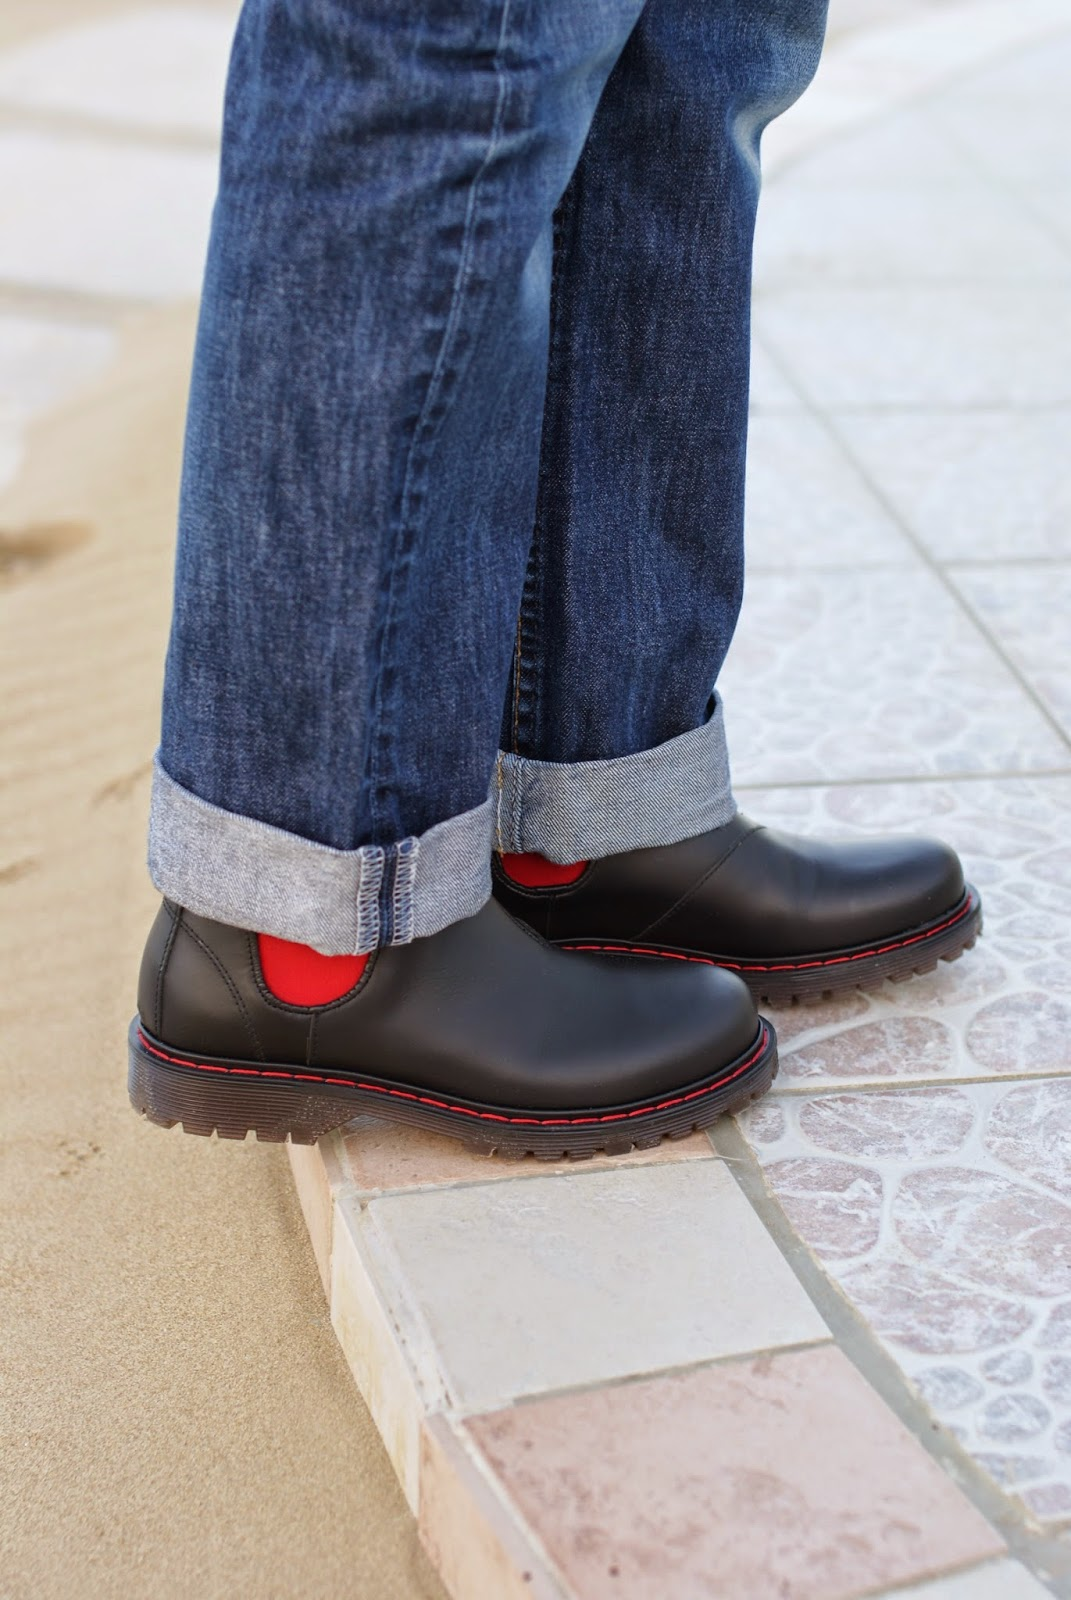 Scilly Islands Chelsea boots, Fashion and Cookies, fashion blogger